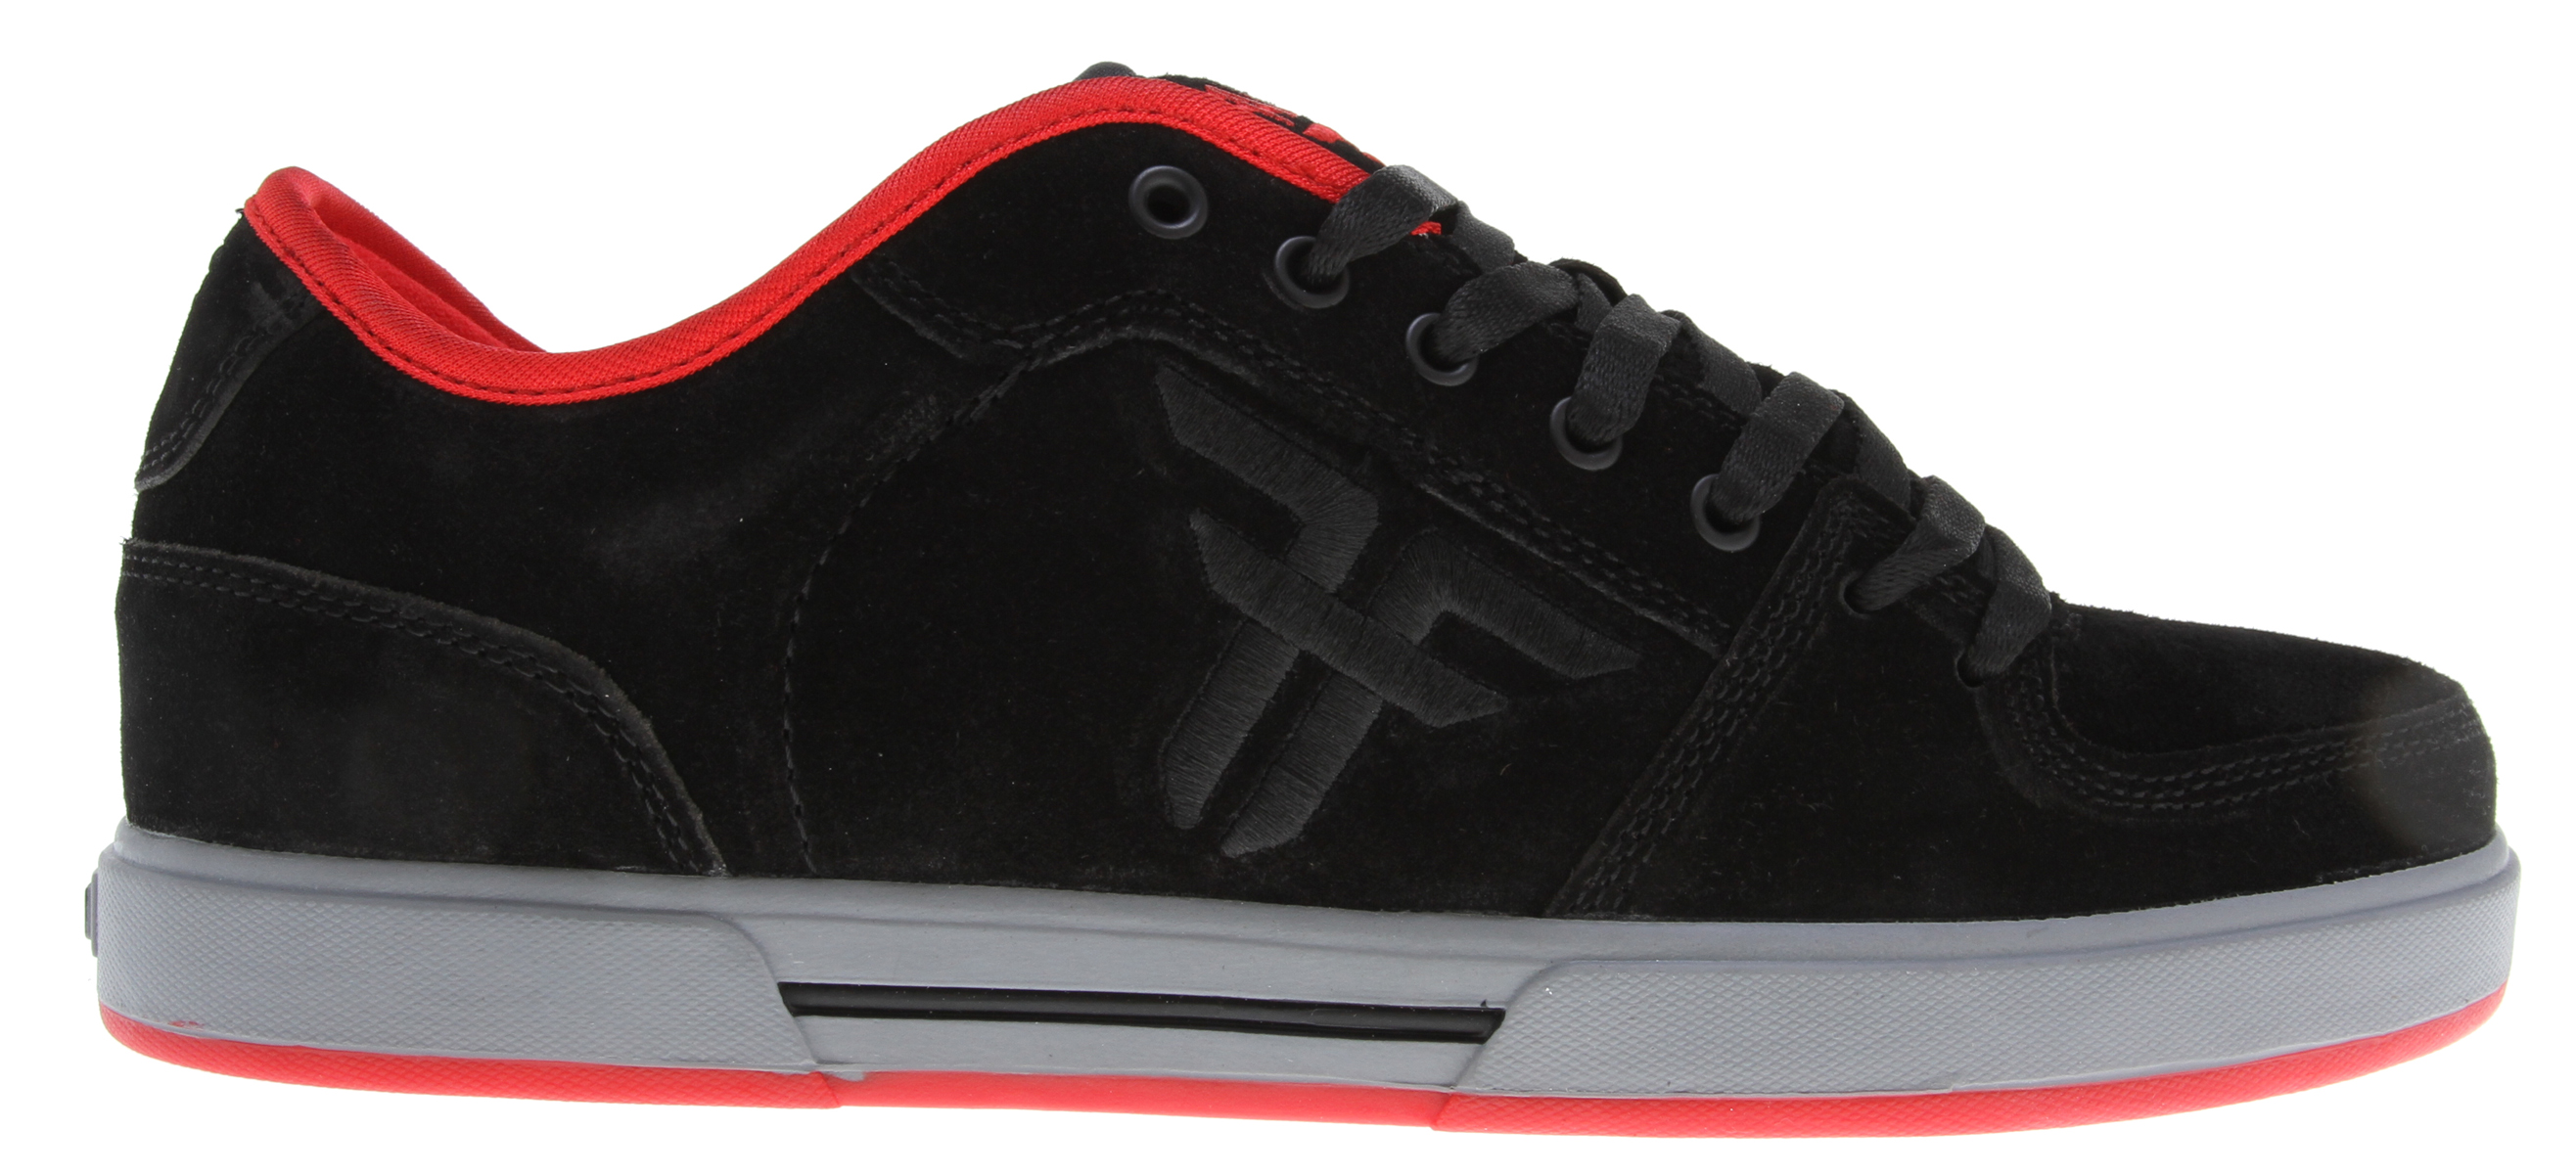 Skateboard The Patriot II is a classic skate silhouette and a all-time staple in the Fallen line. This shoe is designed to be highly supportive, price conscious and traditionally durable. Key Features of the Fallen Patriot II Skate Shoes: Genuine heavy duty suede or synthetic nubuck upper Asymmetric stabilizer for medial upper support Lightly foam-padded collar and tongue for comfort and support EVA insole to absorb impact and provide cushioning Lightweight EVA midsole for additional comfort and impact cushioning Highly abrasion-resistant outsole for wear and durability - $44.95